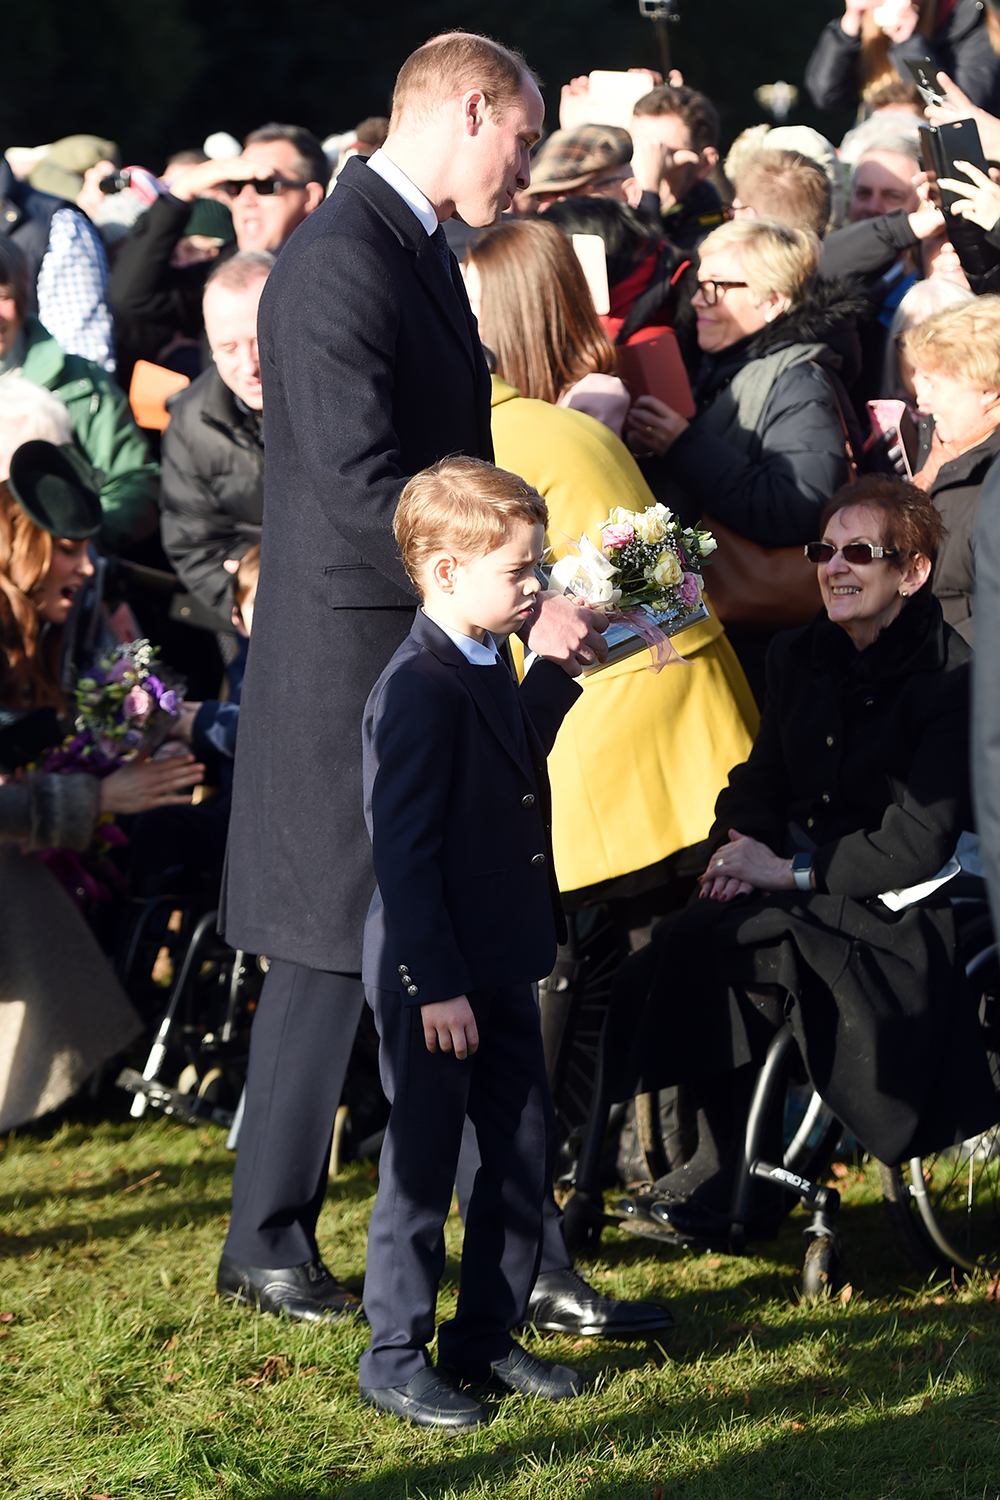 The Duke of Cambridge and Prince George meet well wishers after attending the Christmas Day morning church service at St Mary Magdalene Church in Sandringham, Norfolk. (Photo by Joe Giddens/PA Images via Getty Images)